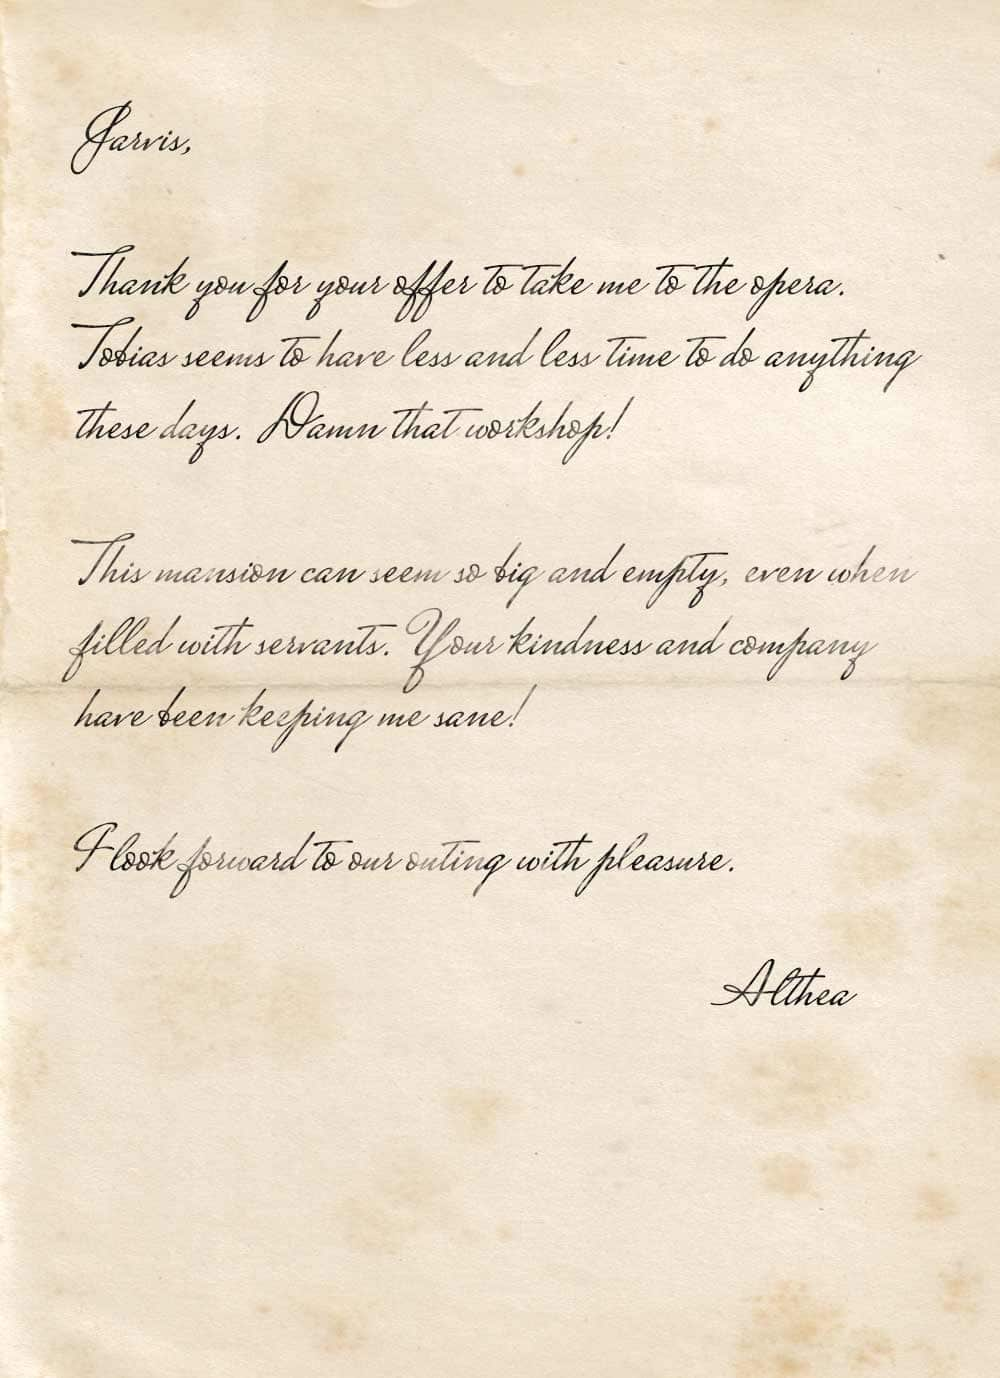 A note from Althea to Jarvis, thanking him for inviting her to the opera.